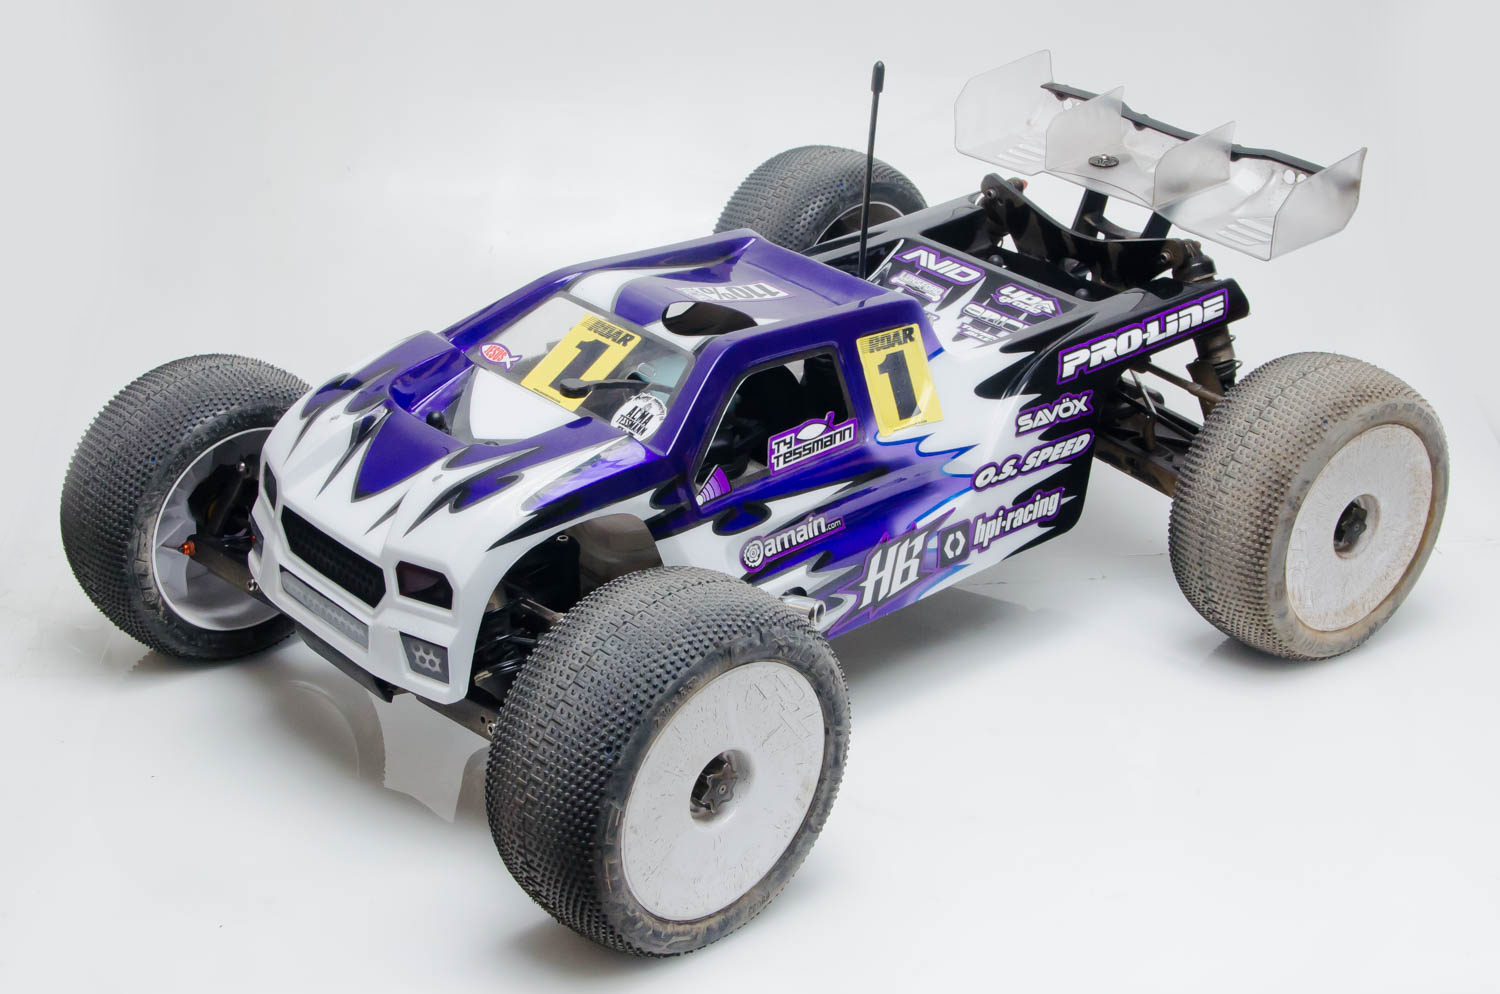 ROAR 1/8 Nitro Off-Road Nats: Inside Ty Tessmann's Rides